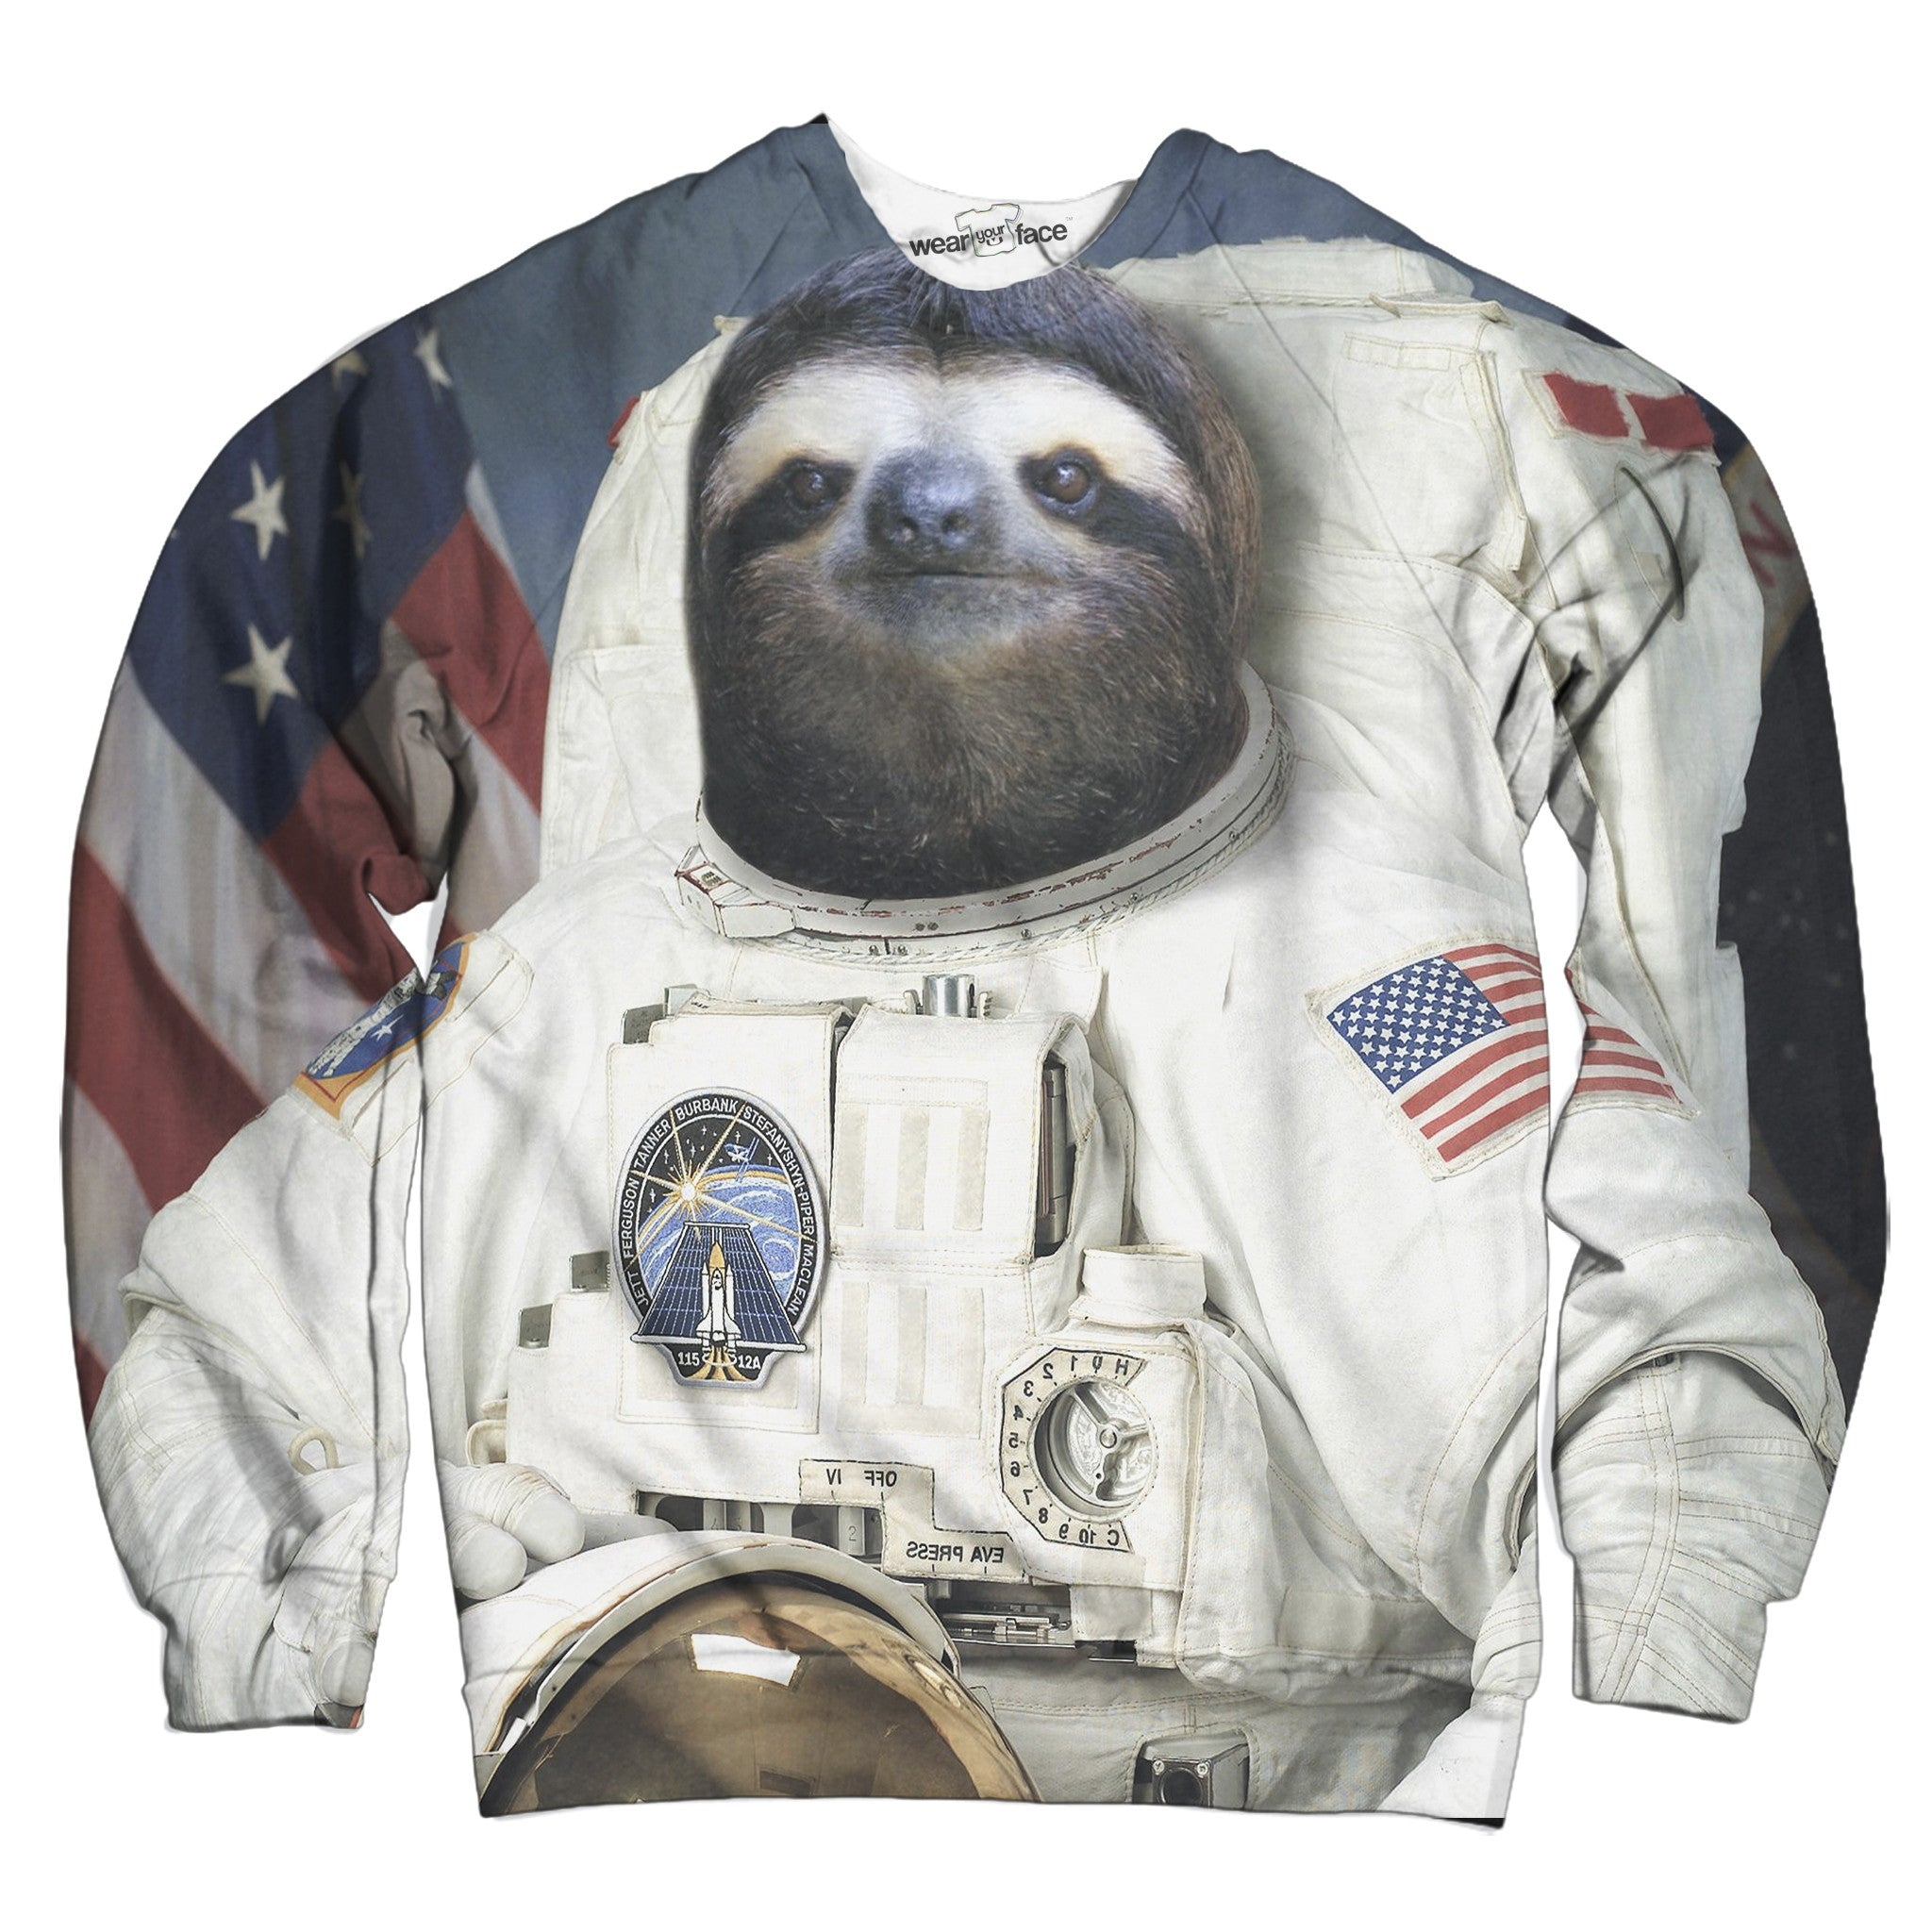 The Sloth Astronaut Mission Sweatshirt